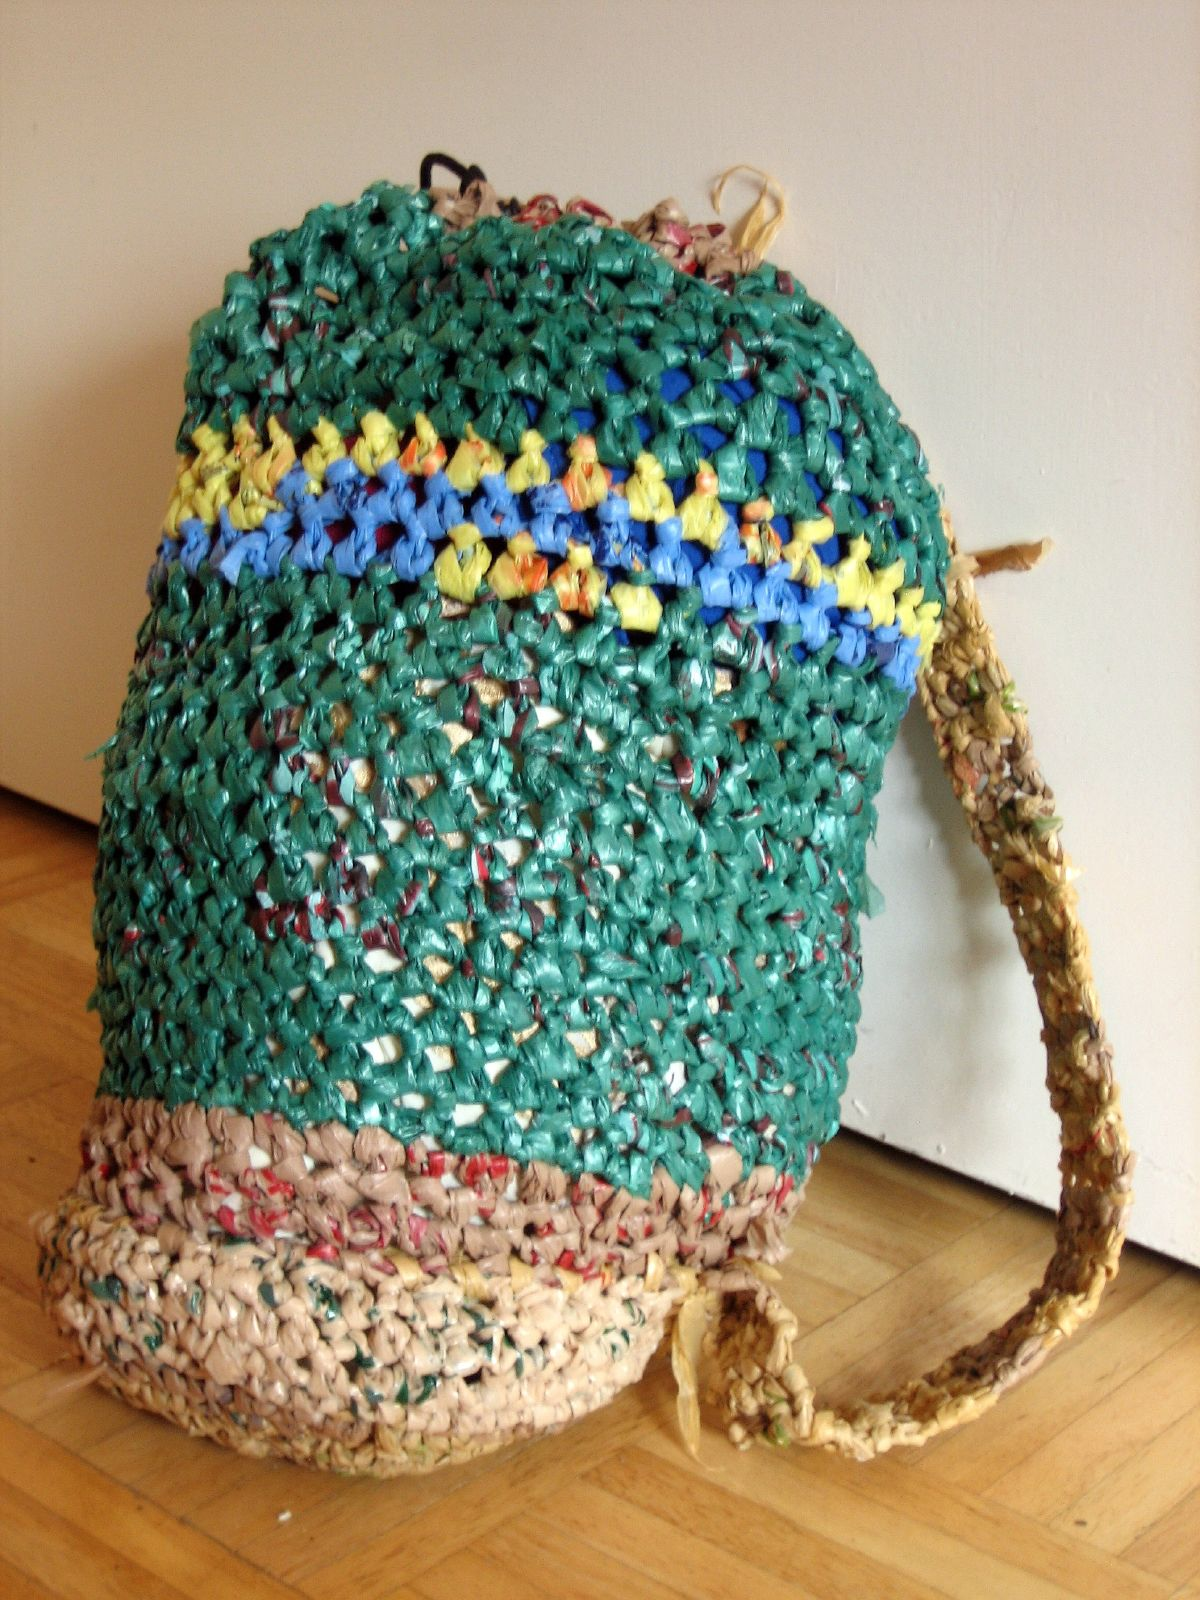 Grocery Bag Crochet : Plastic Bag Creations BagsBeGone.com